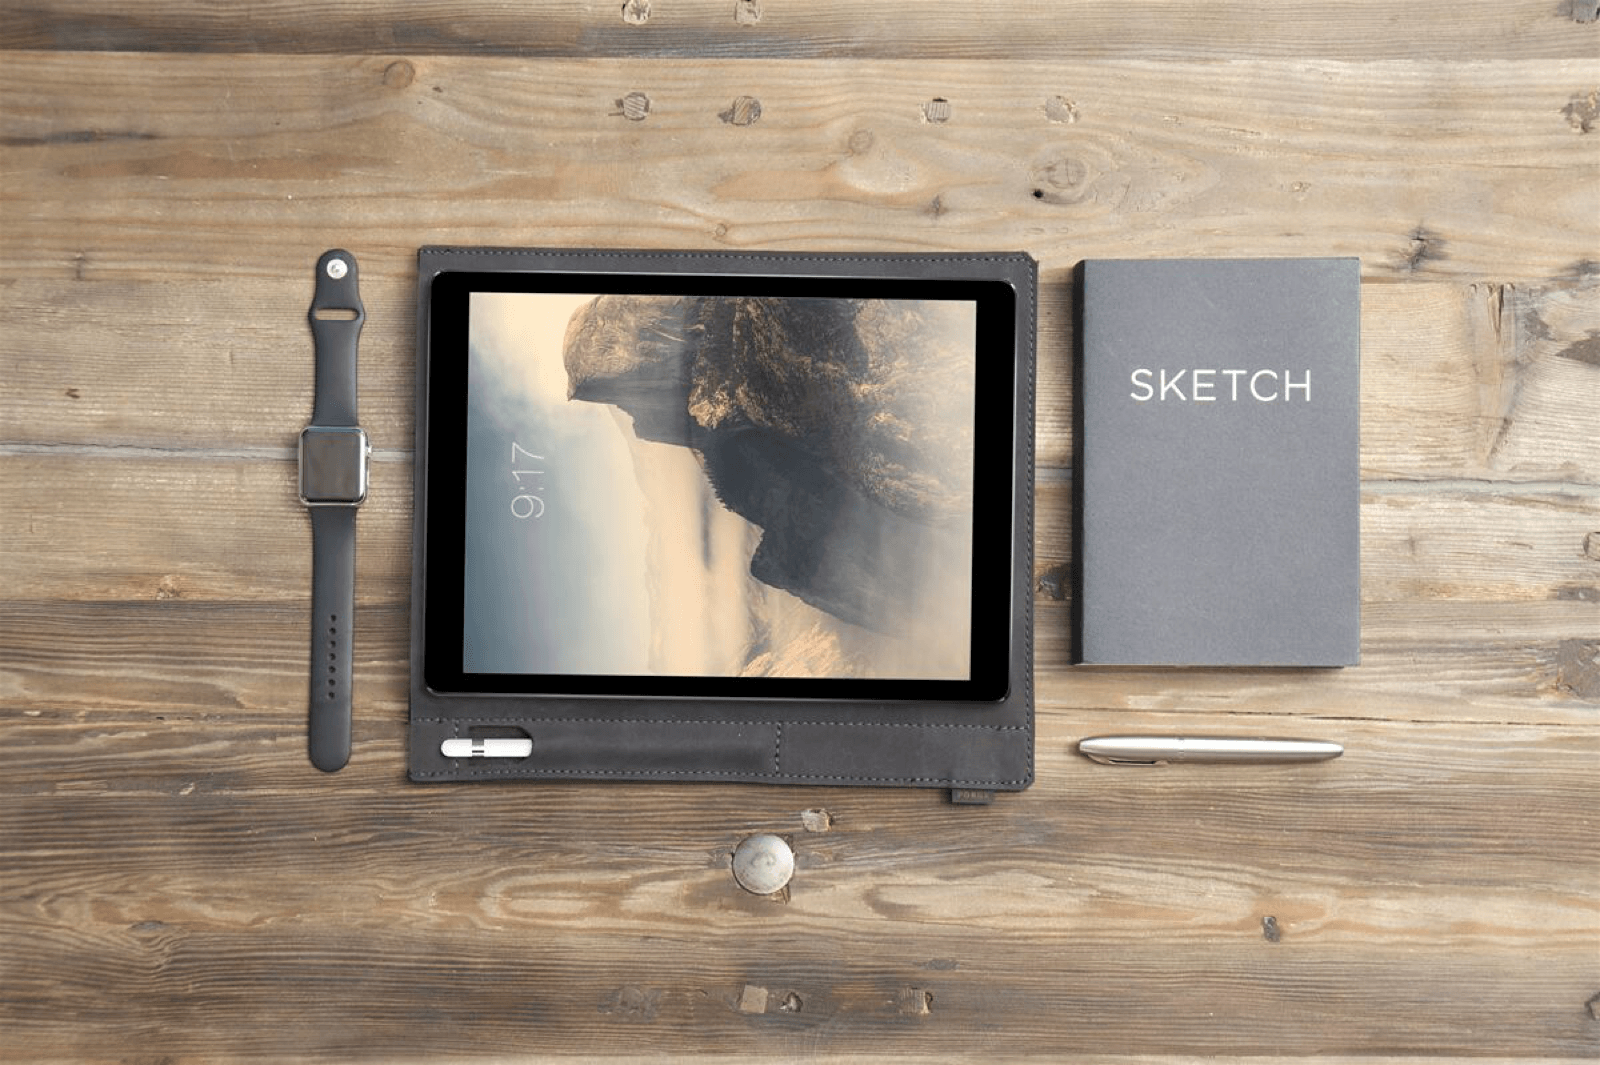 You'll want this pretty leather sleeve for your iPad Pro and Apple Pencil